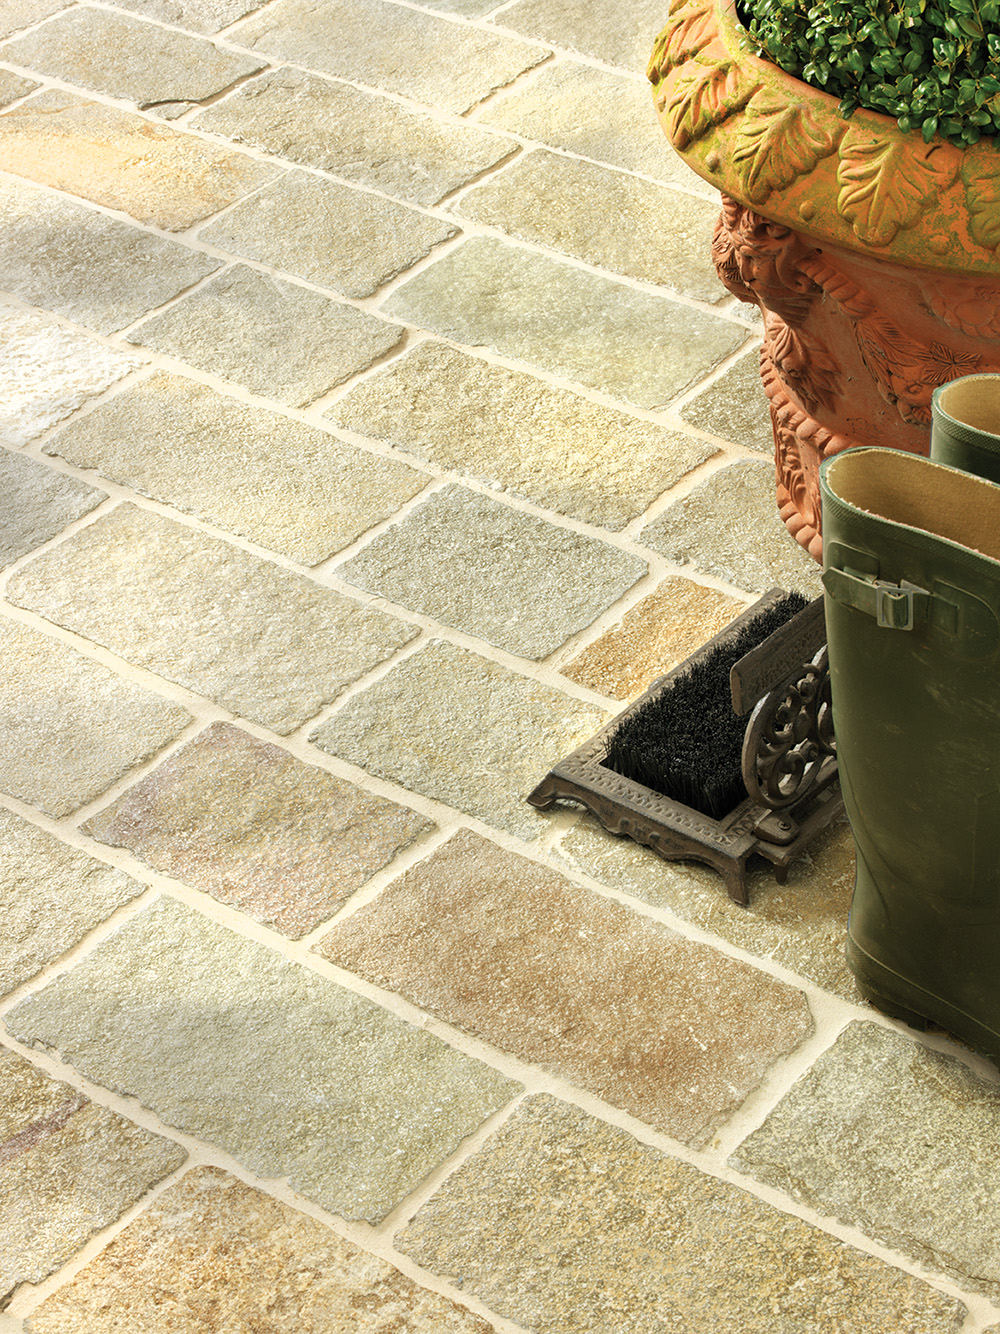 Caring for stone: Your guide to maximising the life of your floor